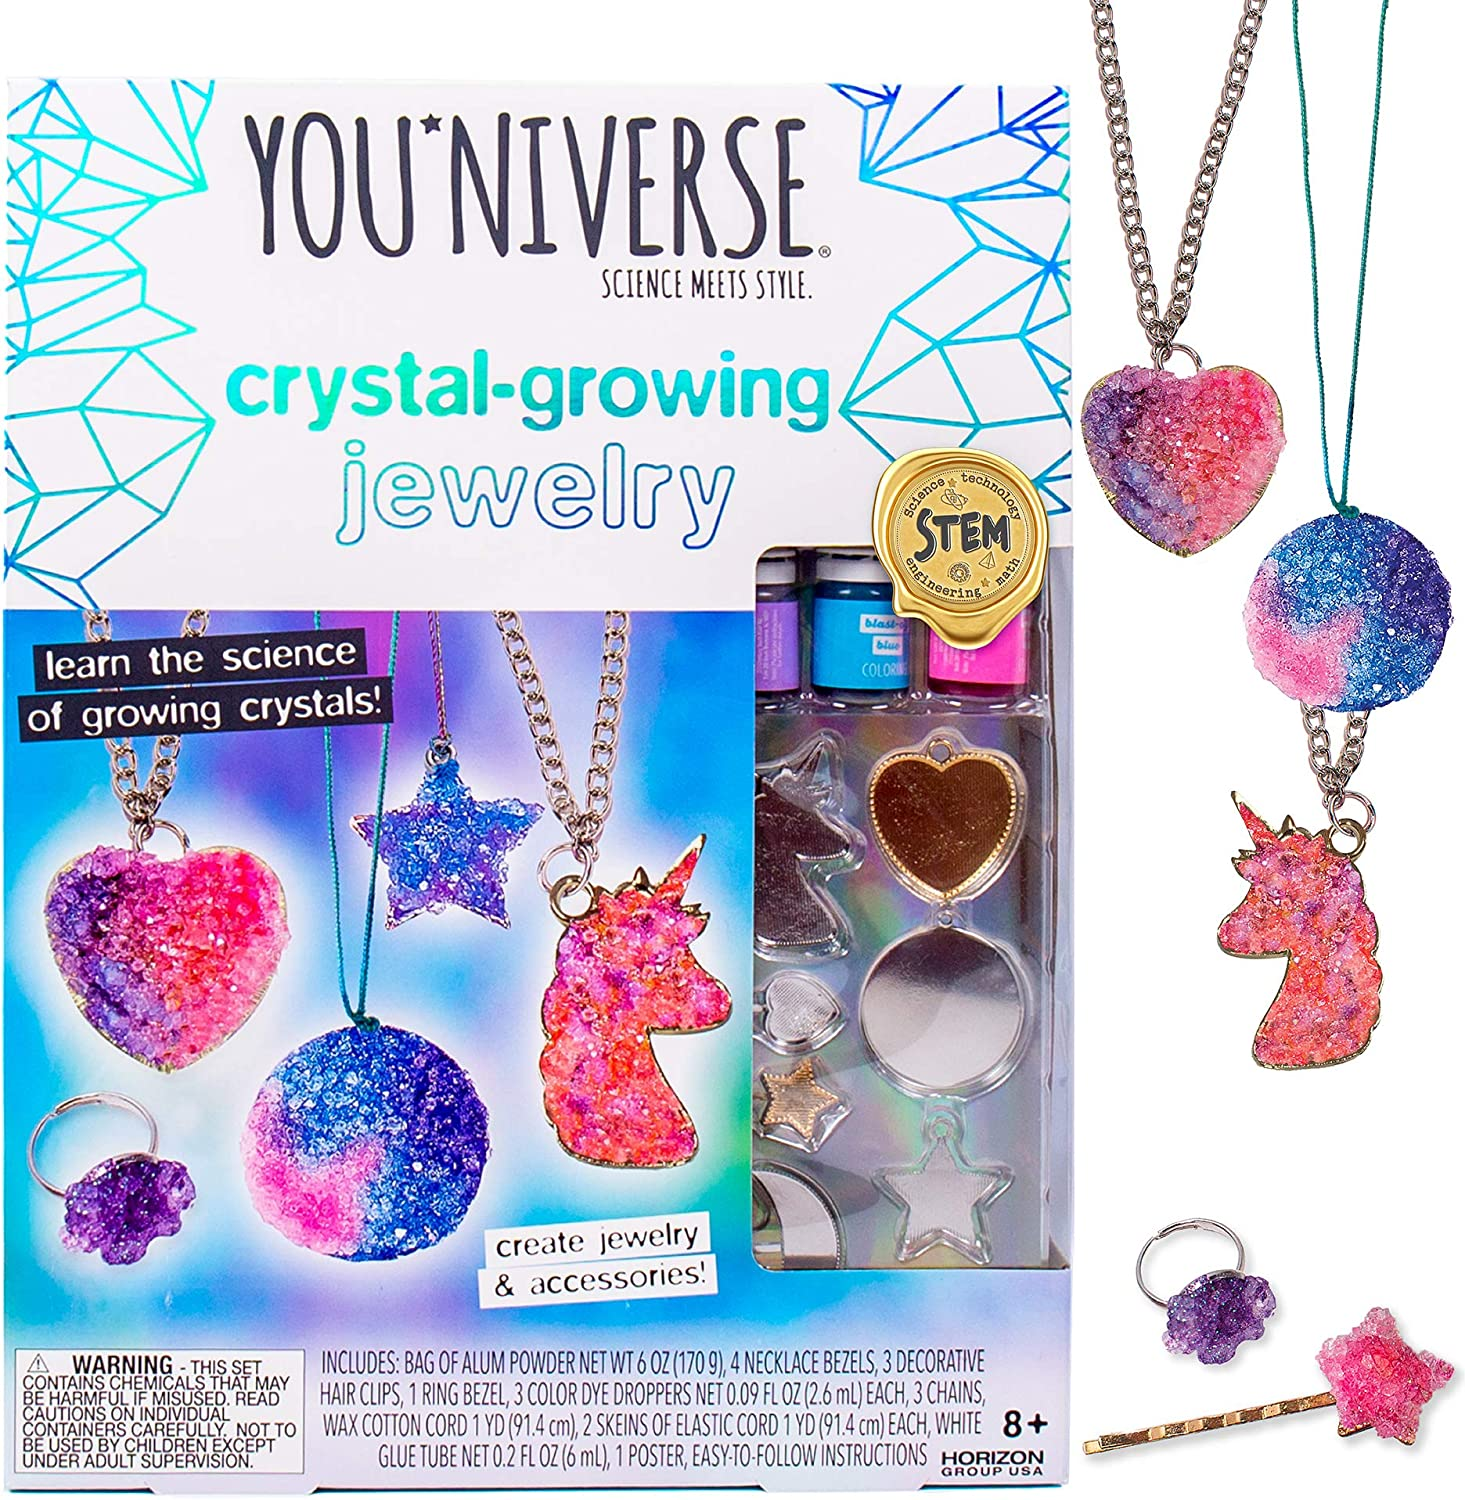 Youniverse Crystal Growing Jewelry by Horizon Group USA,Girl Stem DIY Science Craft Kit. Design 8 Crystal Growing Accessories.Make Your Own Crystal Pendants,Sparkling Hair Pins,Ring & More